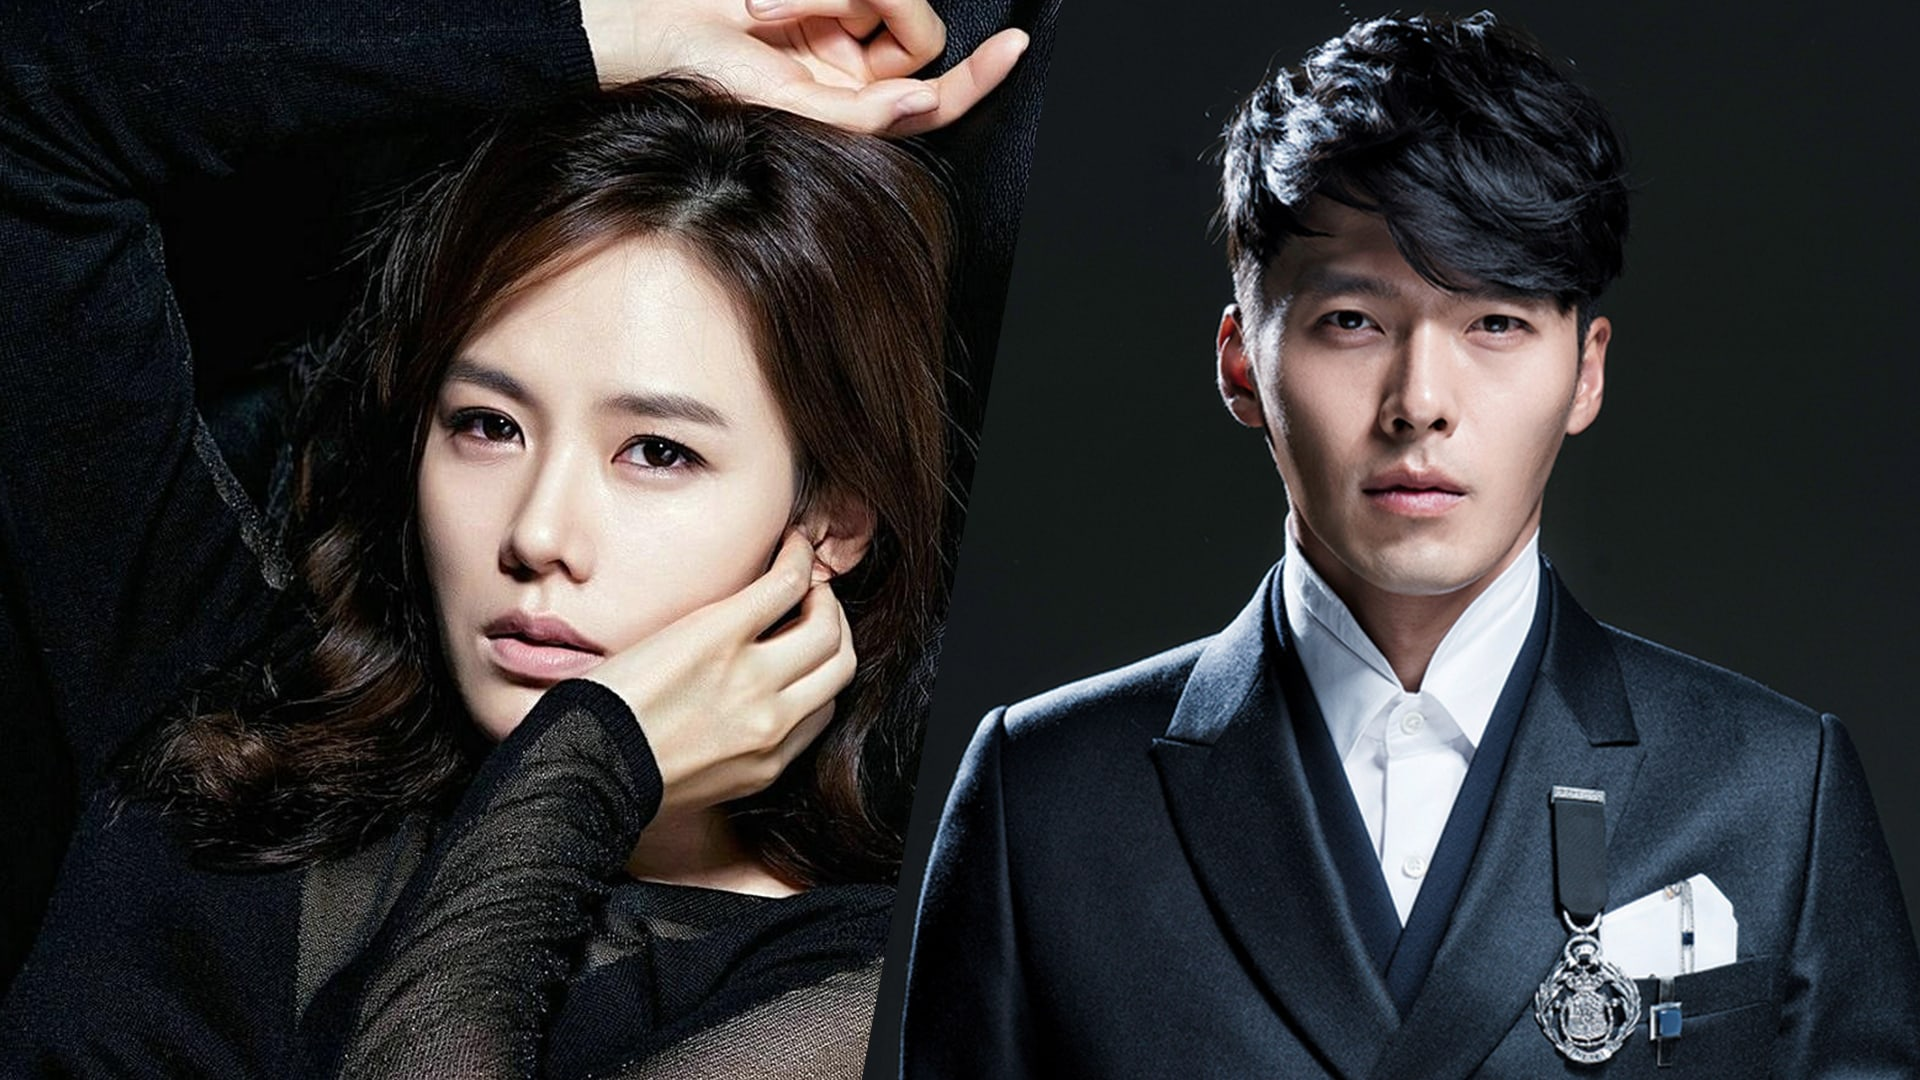 Hyun Bin And Son Ye Jin To Potentially Star In New Crime Thriller Movie Together